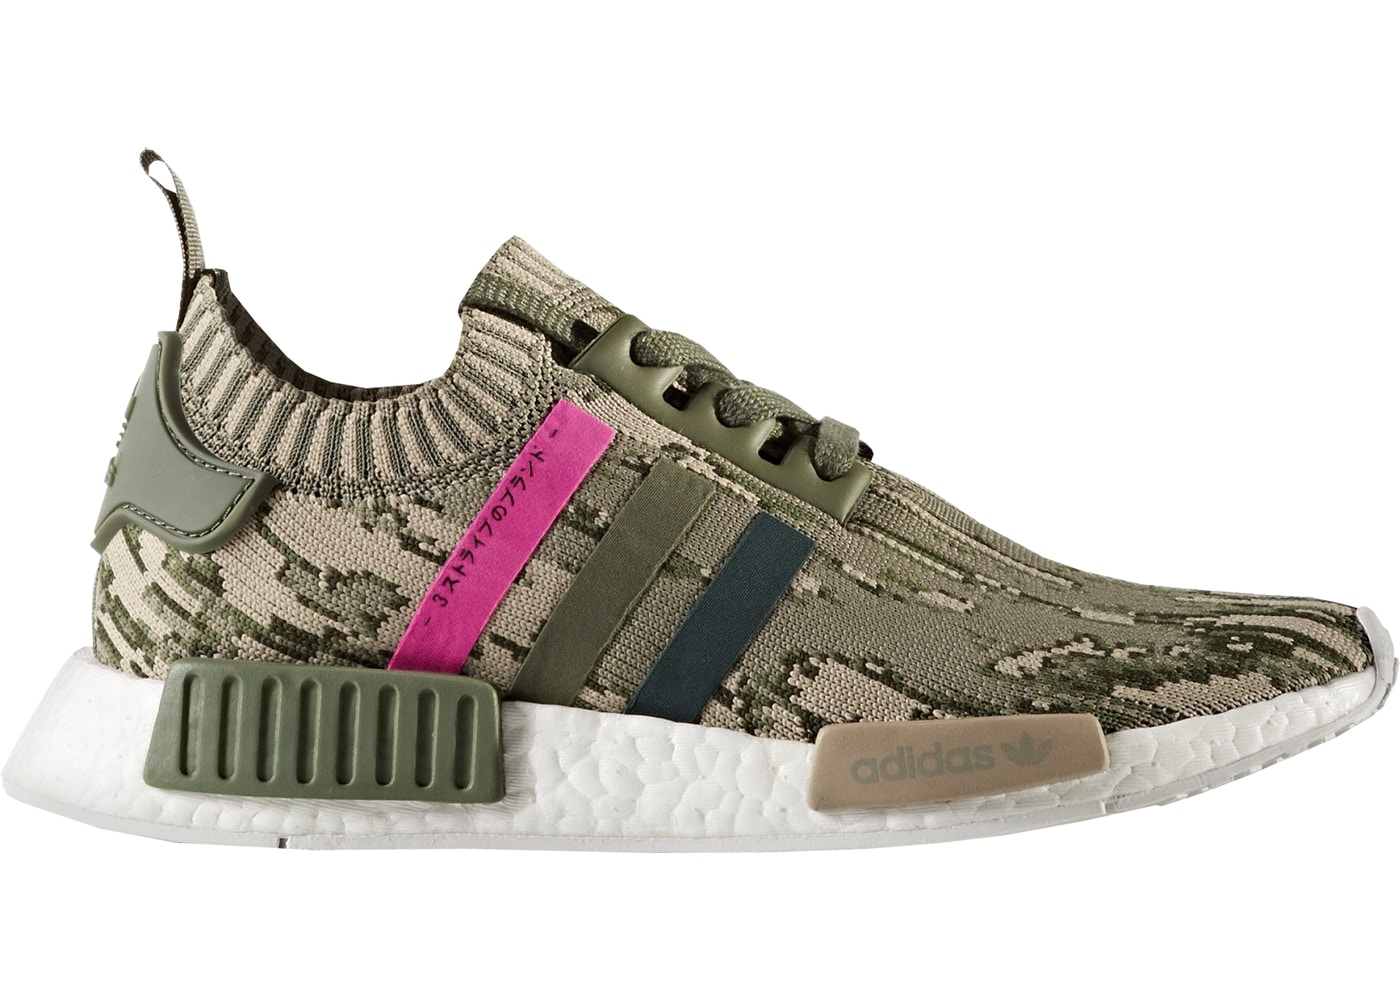 f45fbcb0d5711 adidas NMD R1 Glitch Camo St Major (W) - BY9864